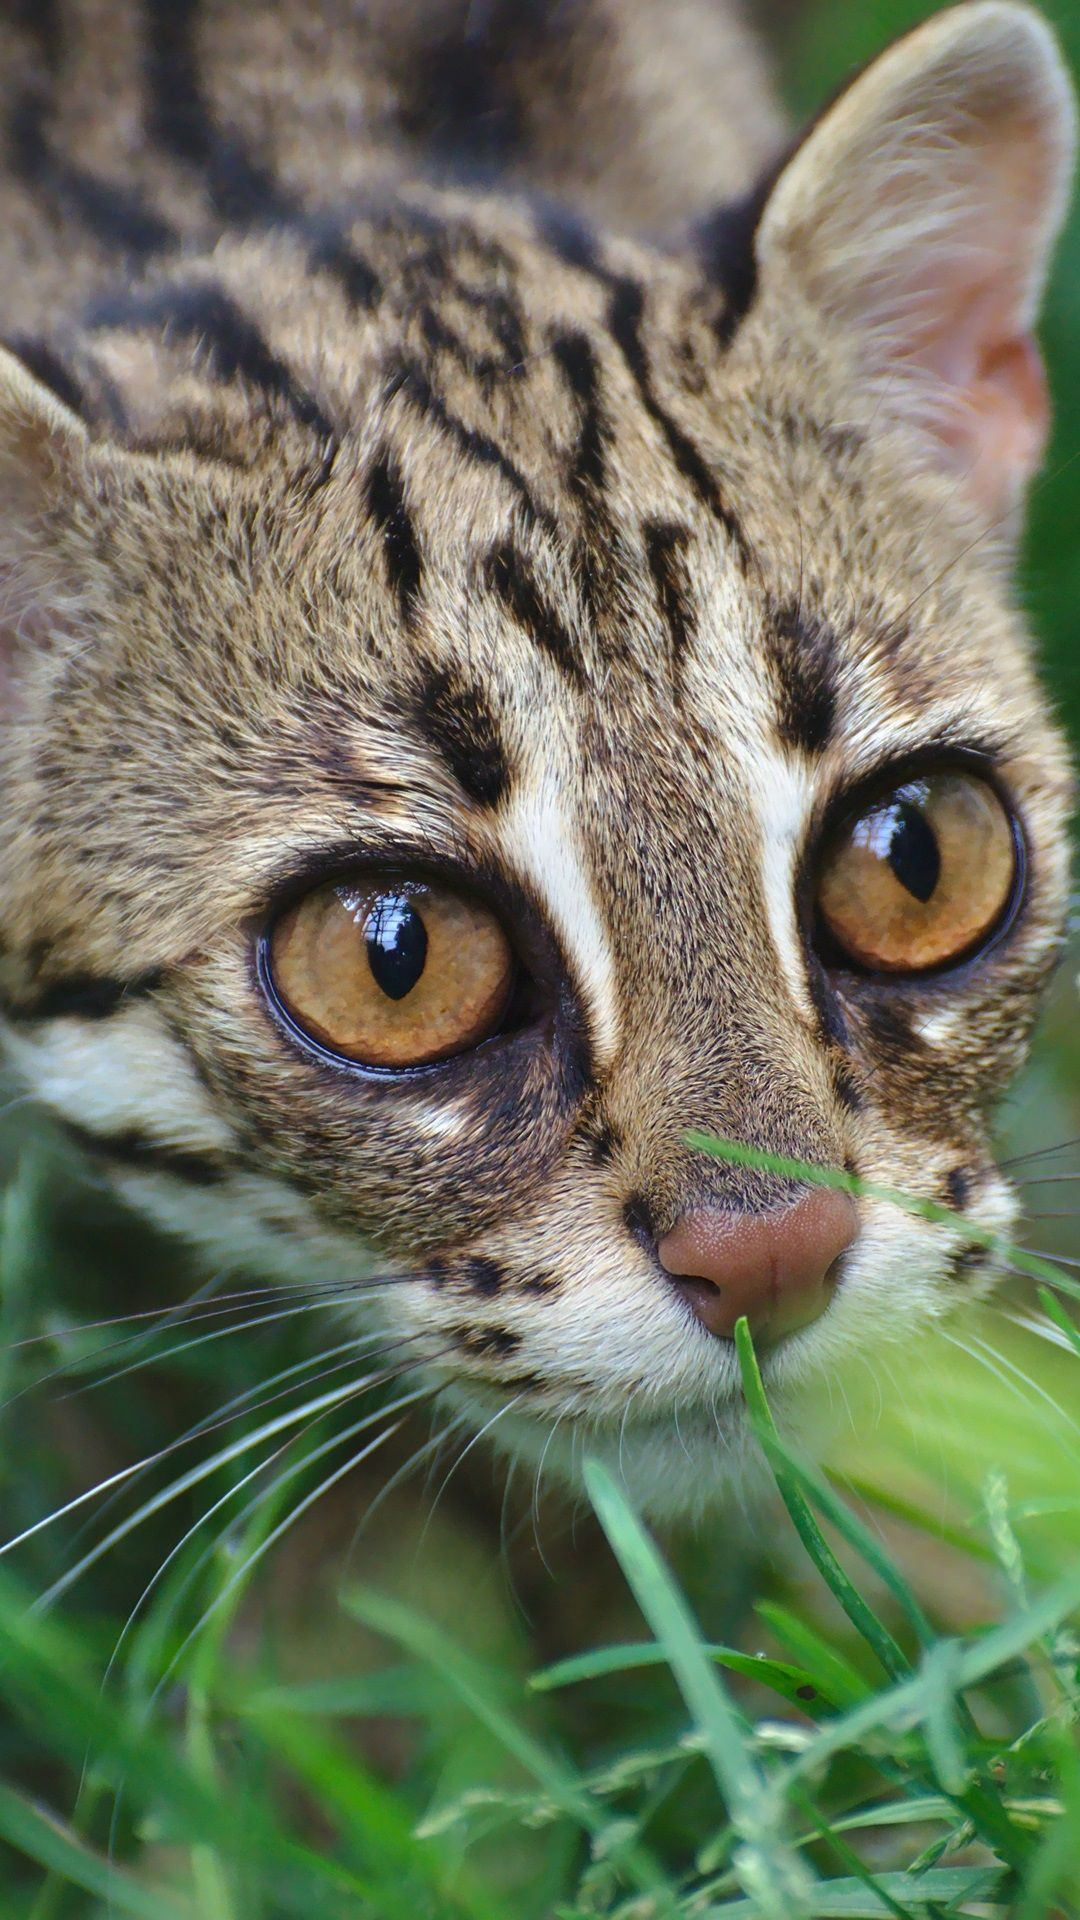 Clouded leopard, wild cat, grass Wild cats, Clouded